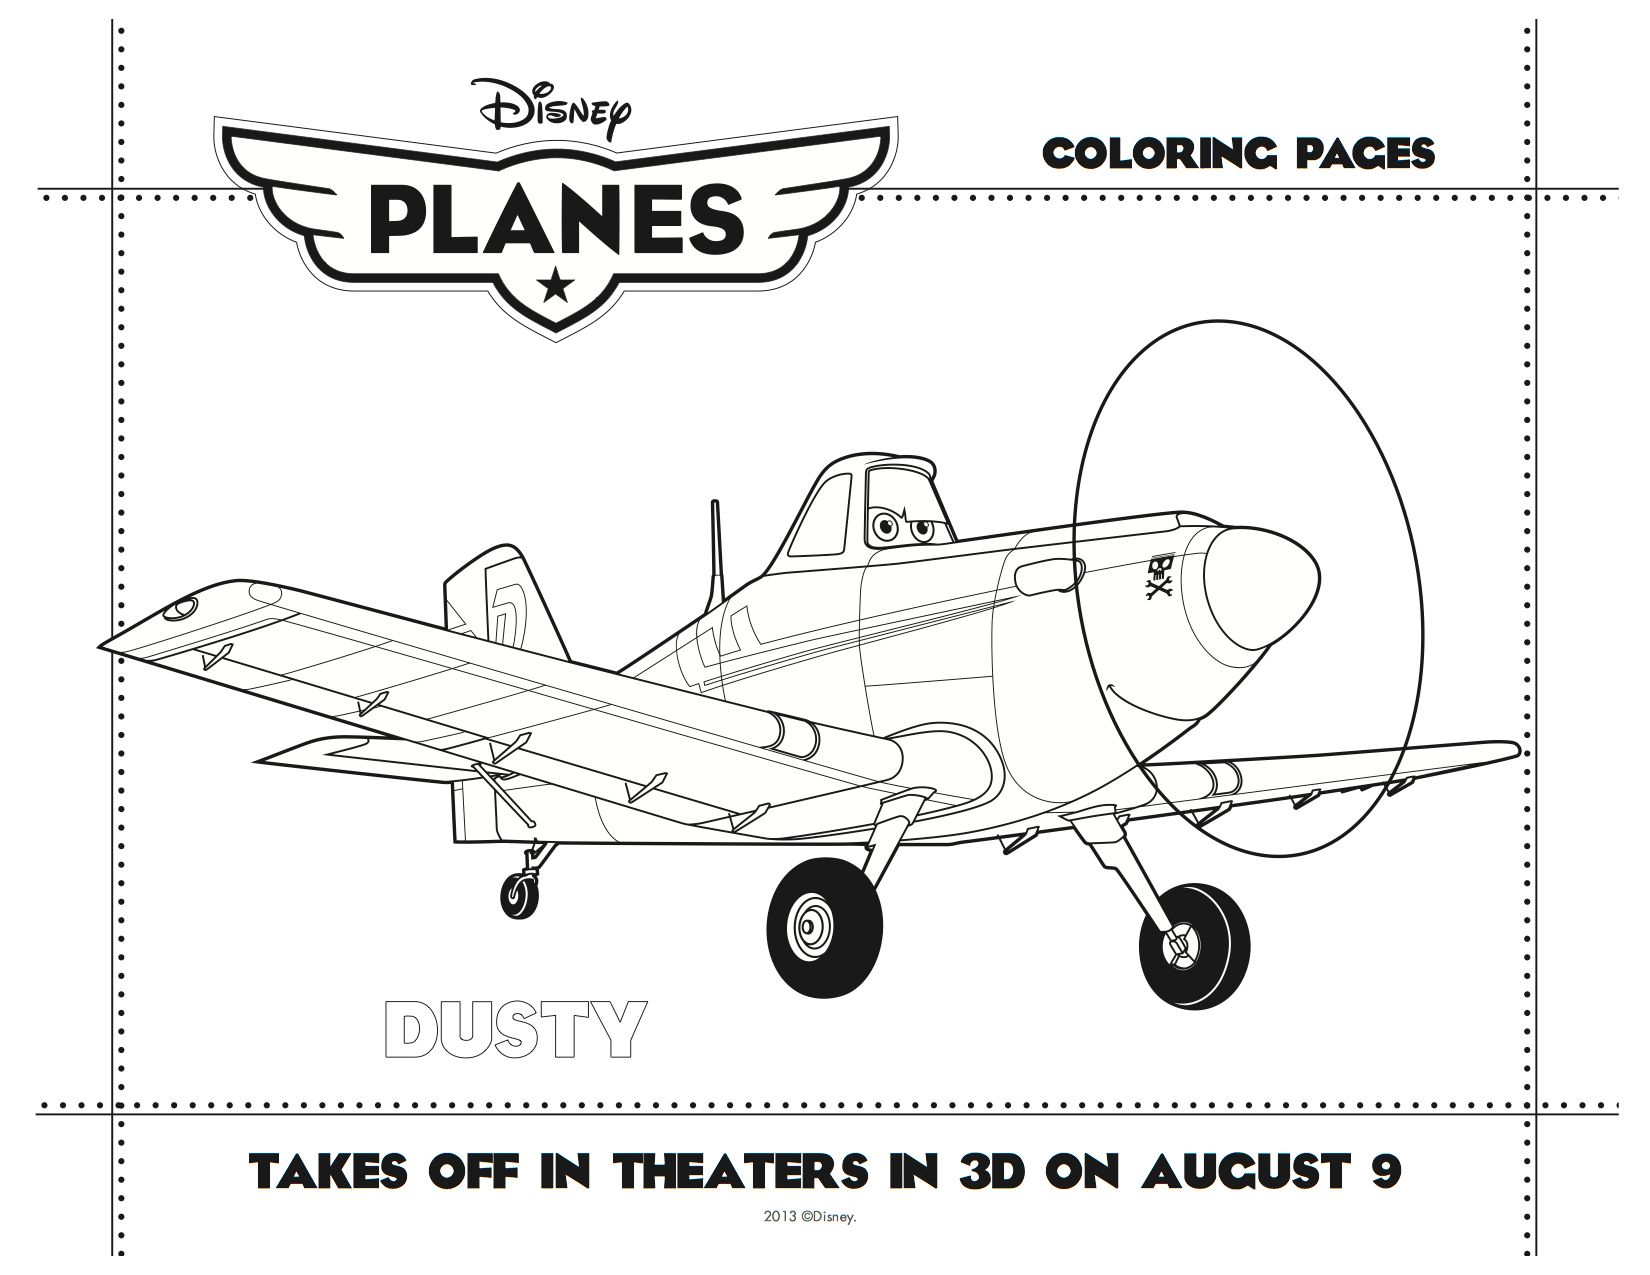 Free Printable Disney Planes Dusty Coloring Page For Kids